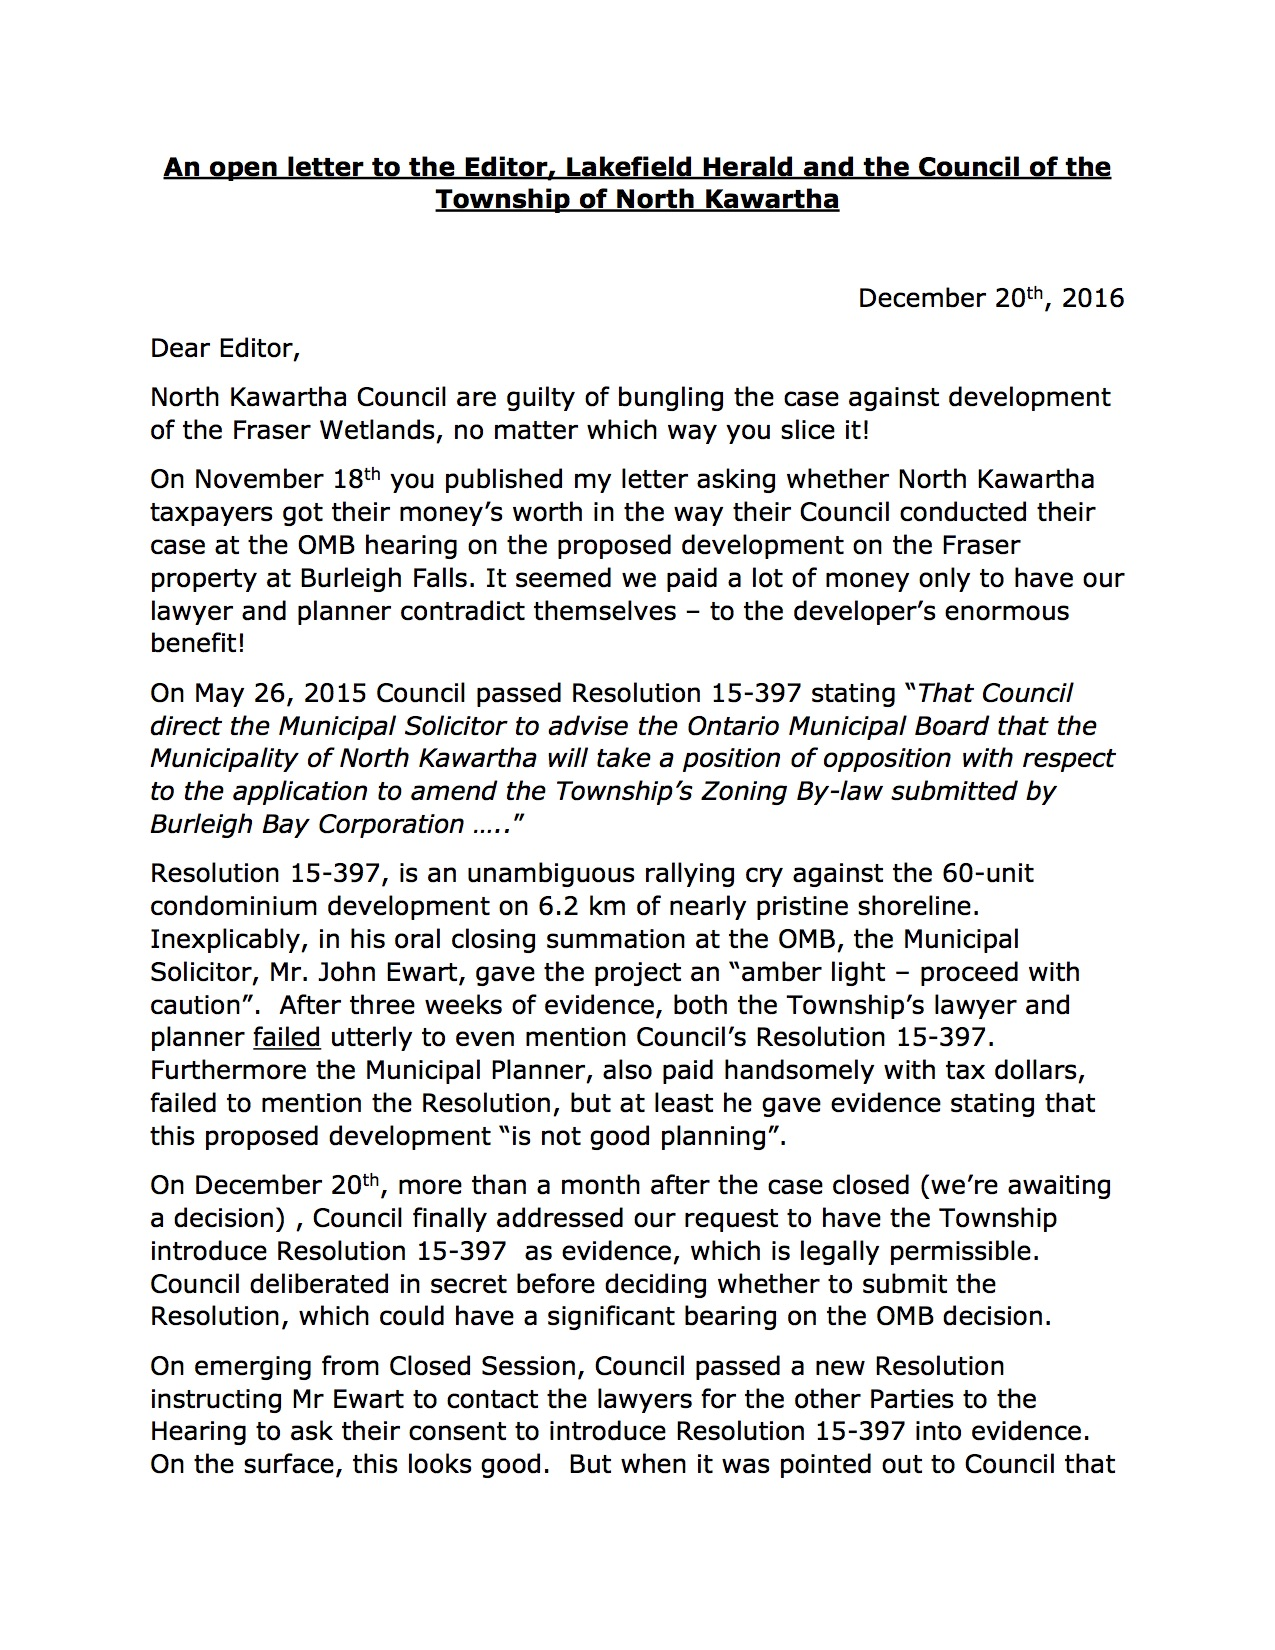 persuasive essay letter to the editor Iqbal ka mard e momin best persuasive essay editor for hire for university essay writer, creative writing course content, how to dissertation proposal writing.